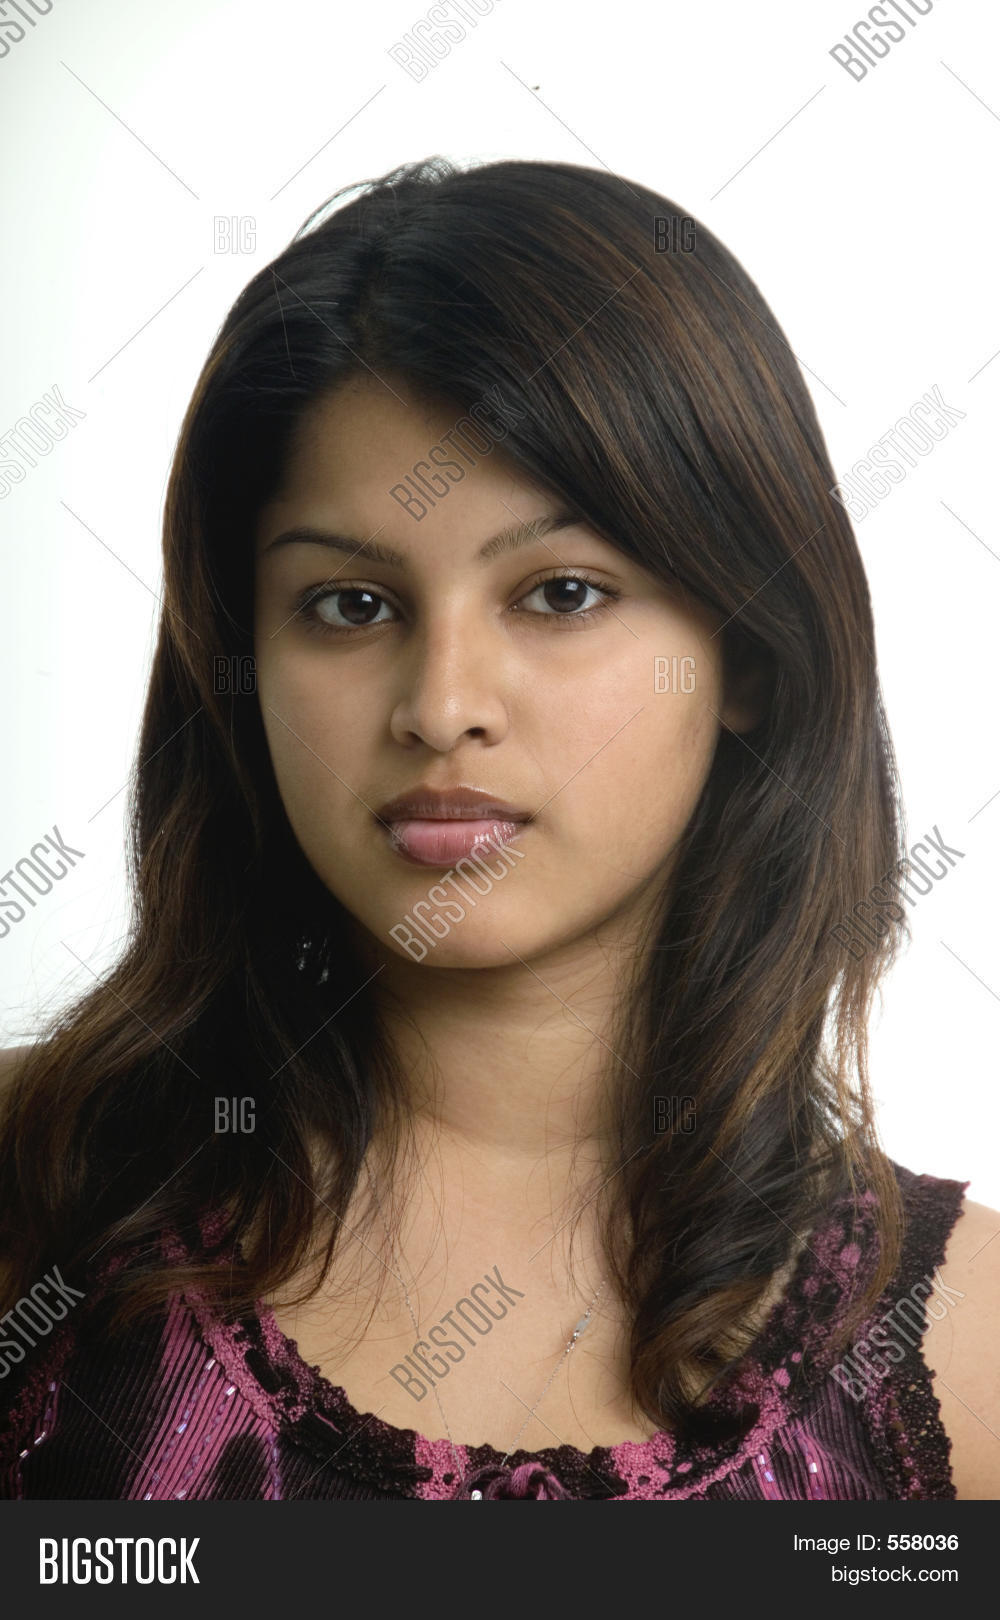 Meet Single Bangladeshi Girls and Guys